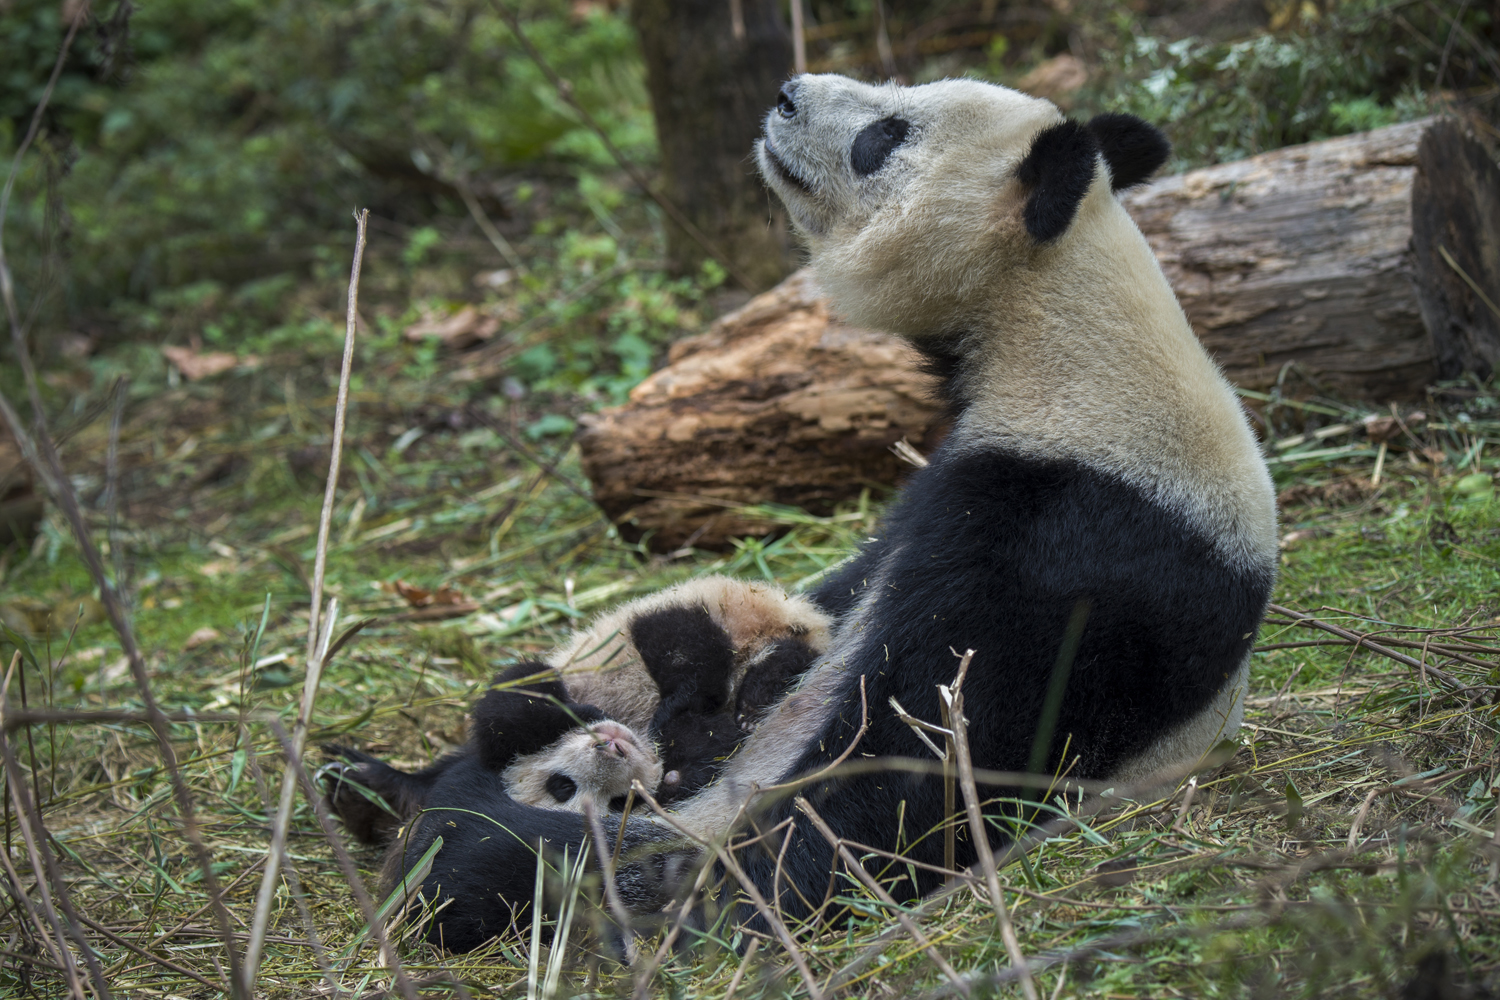 A 14 year old panda named YeYe holds her young cub.  The mother is captive born and her baby is being trained to be released back into the                               wild.